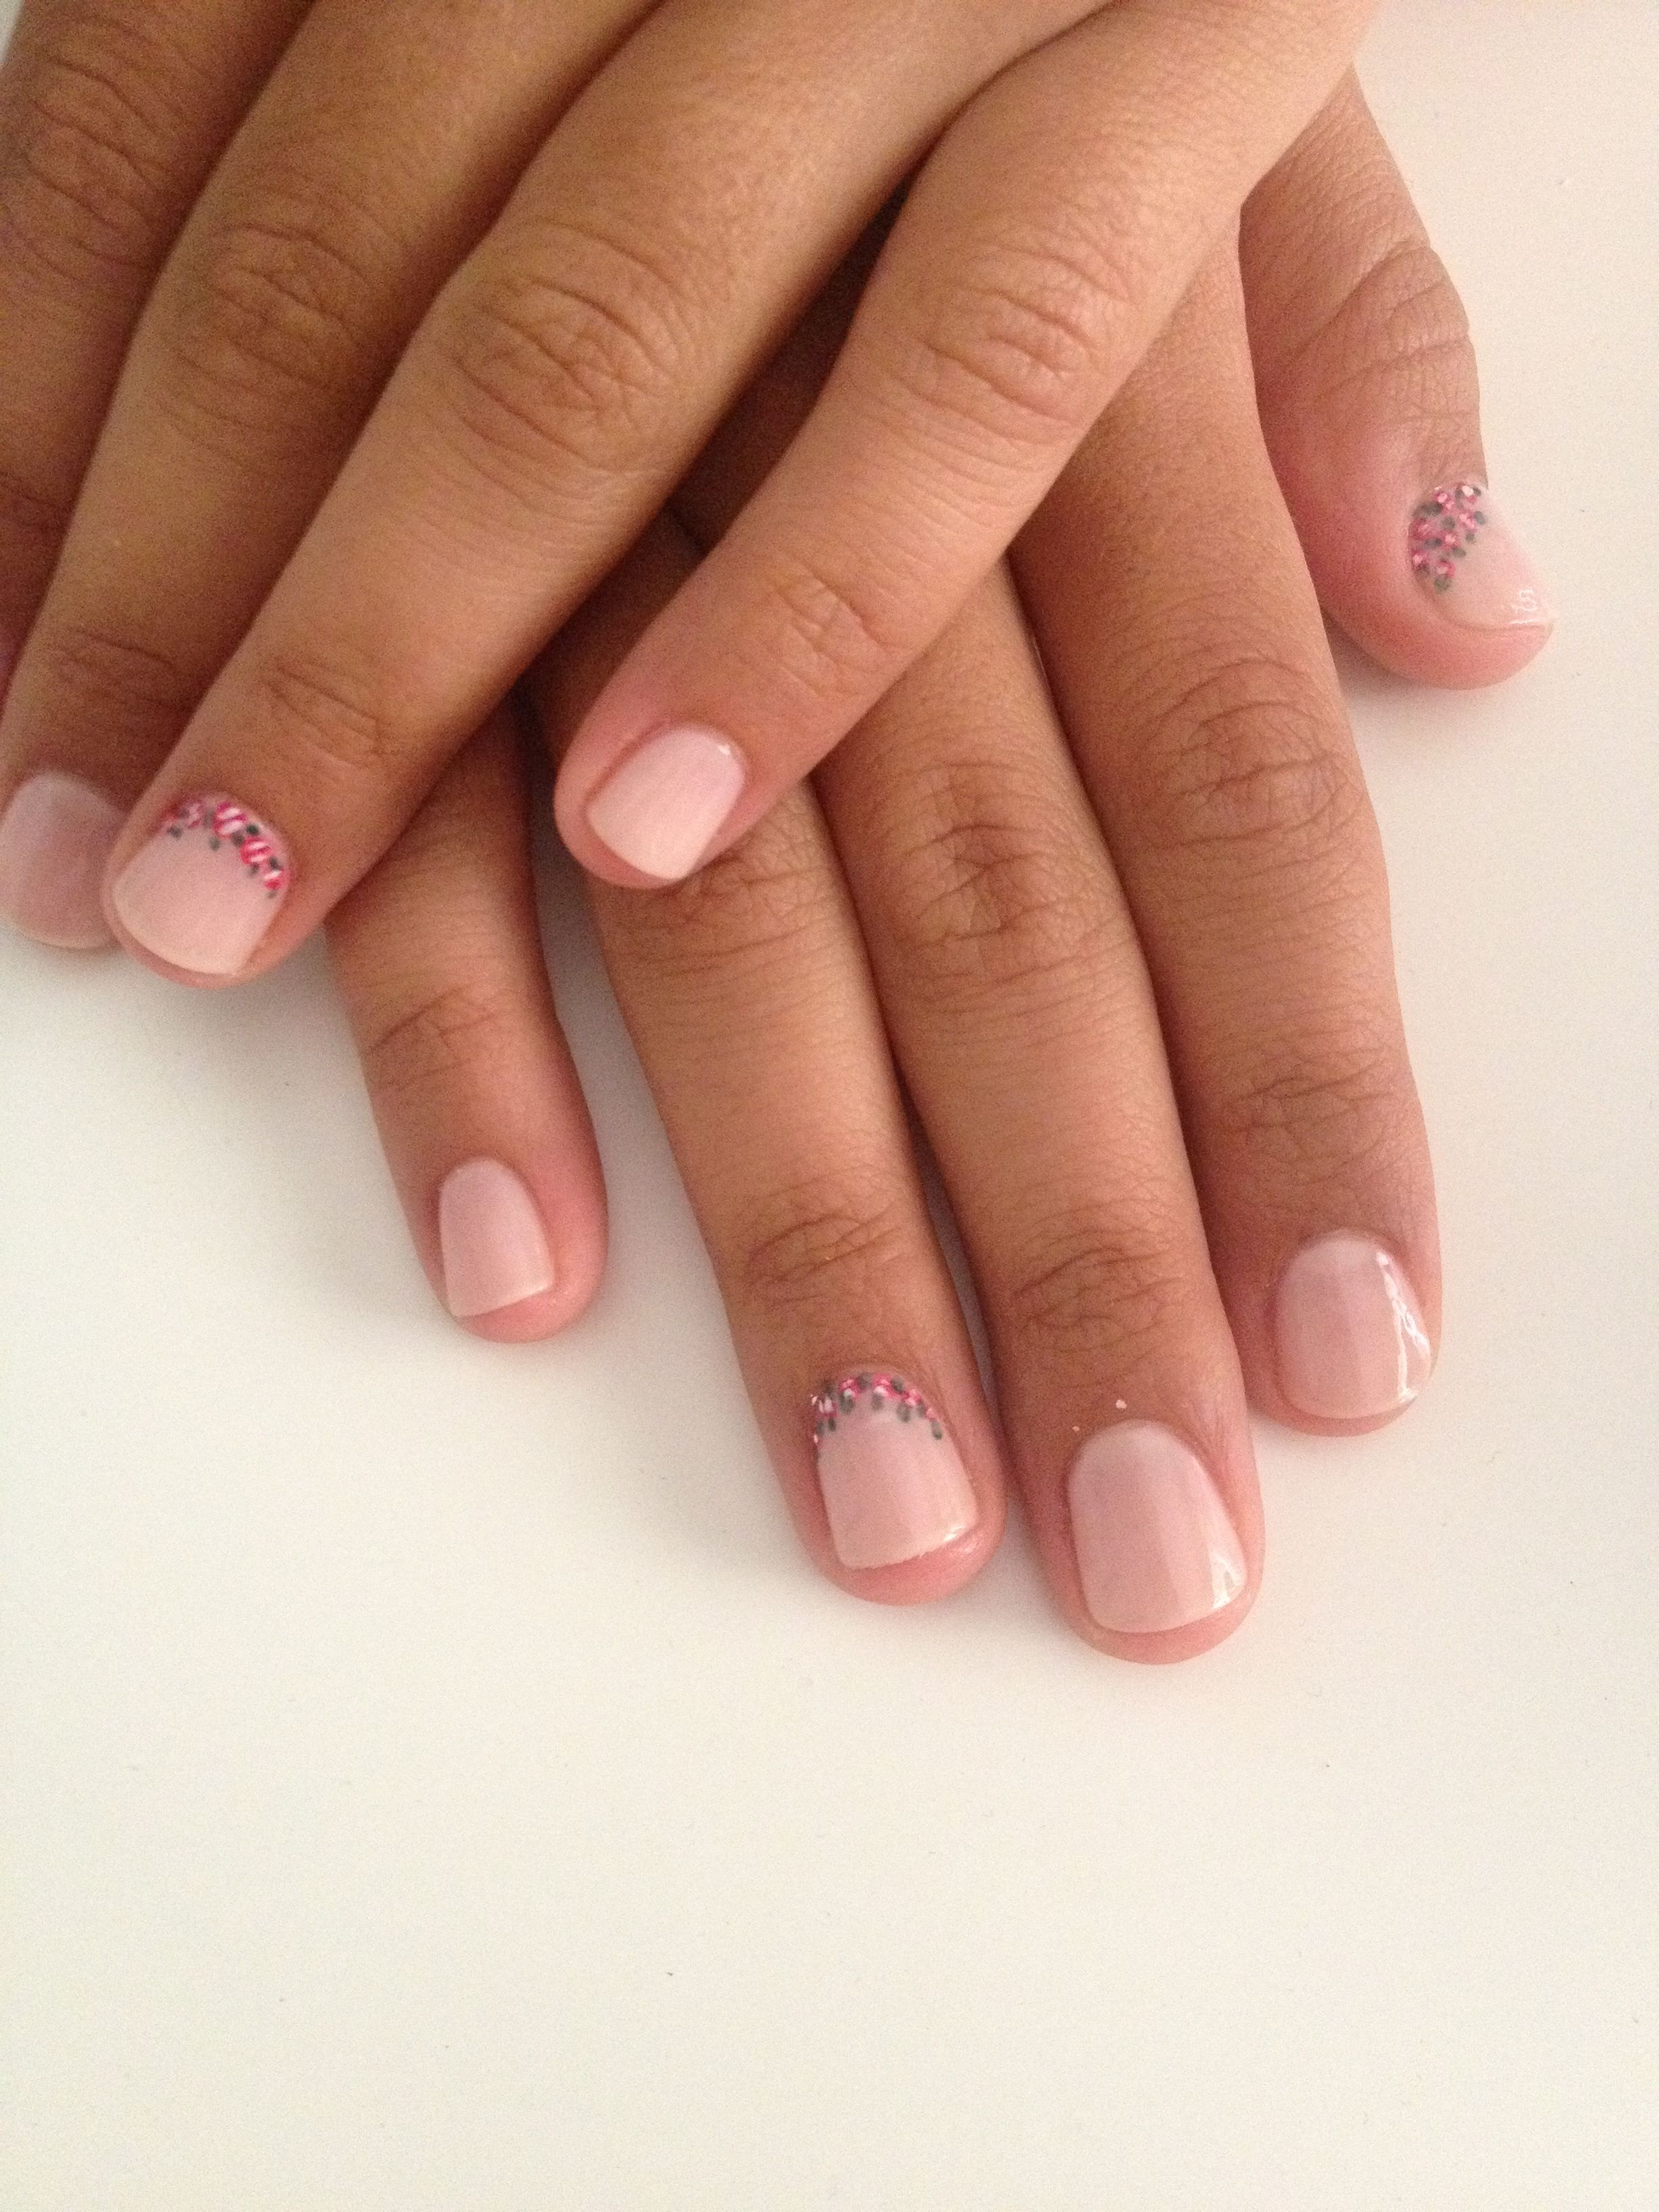 Nude colour nail polish with little flowers as a design nails